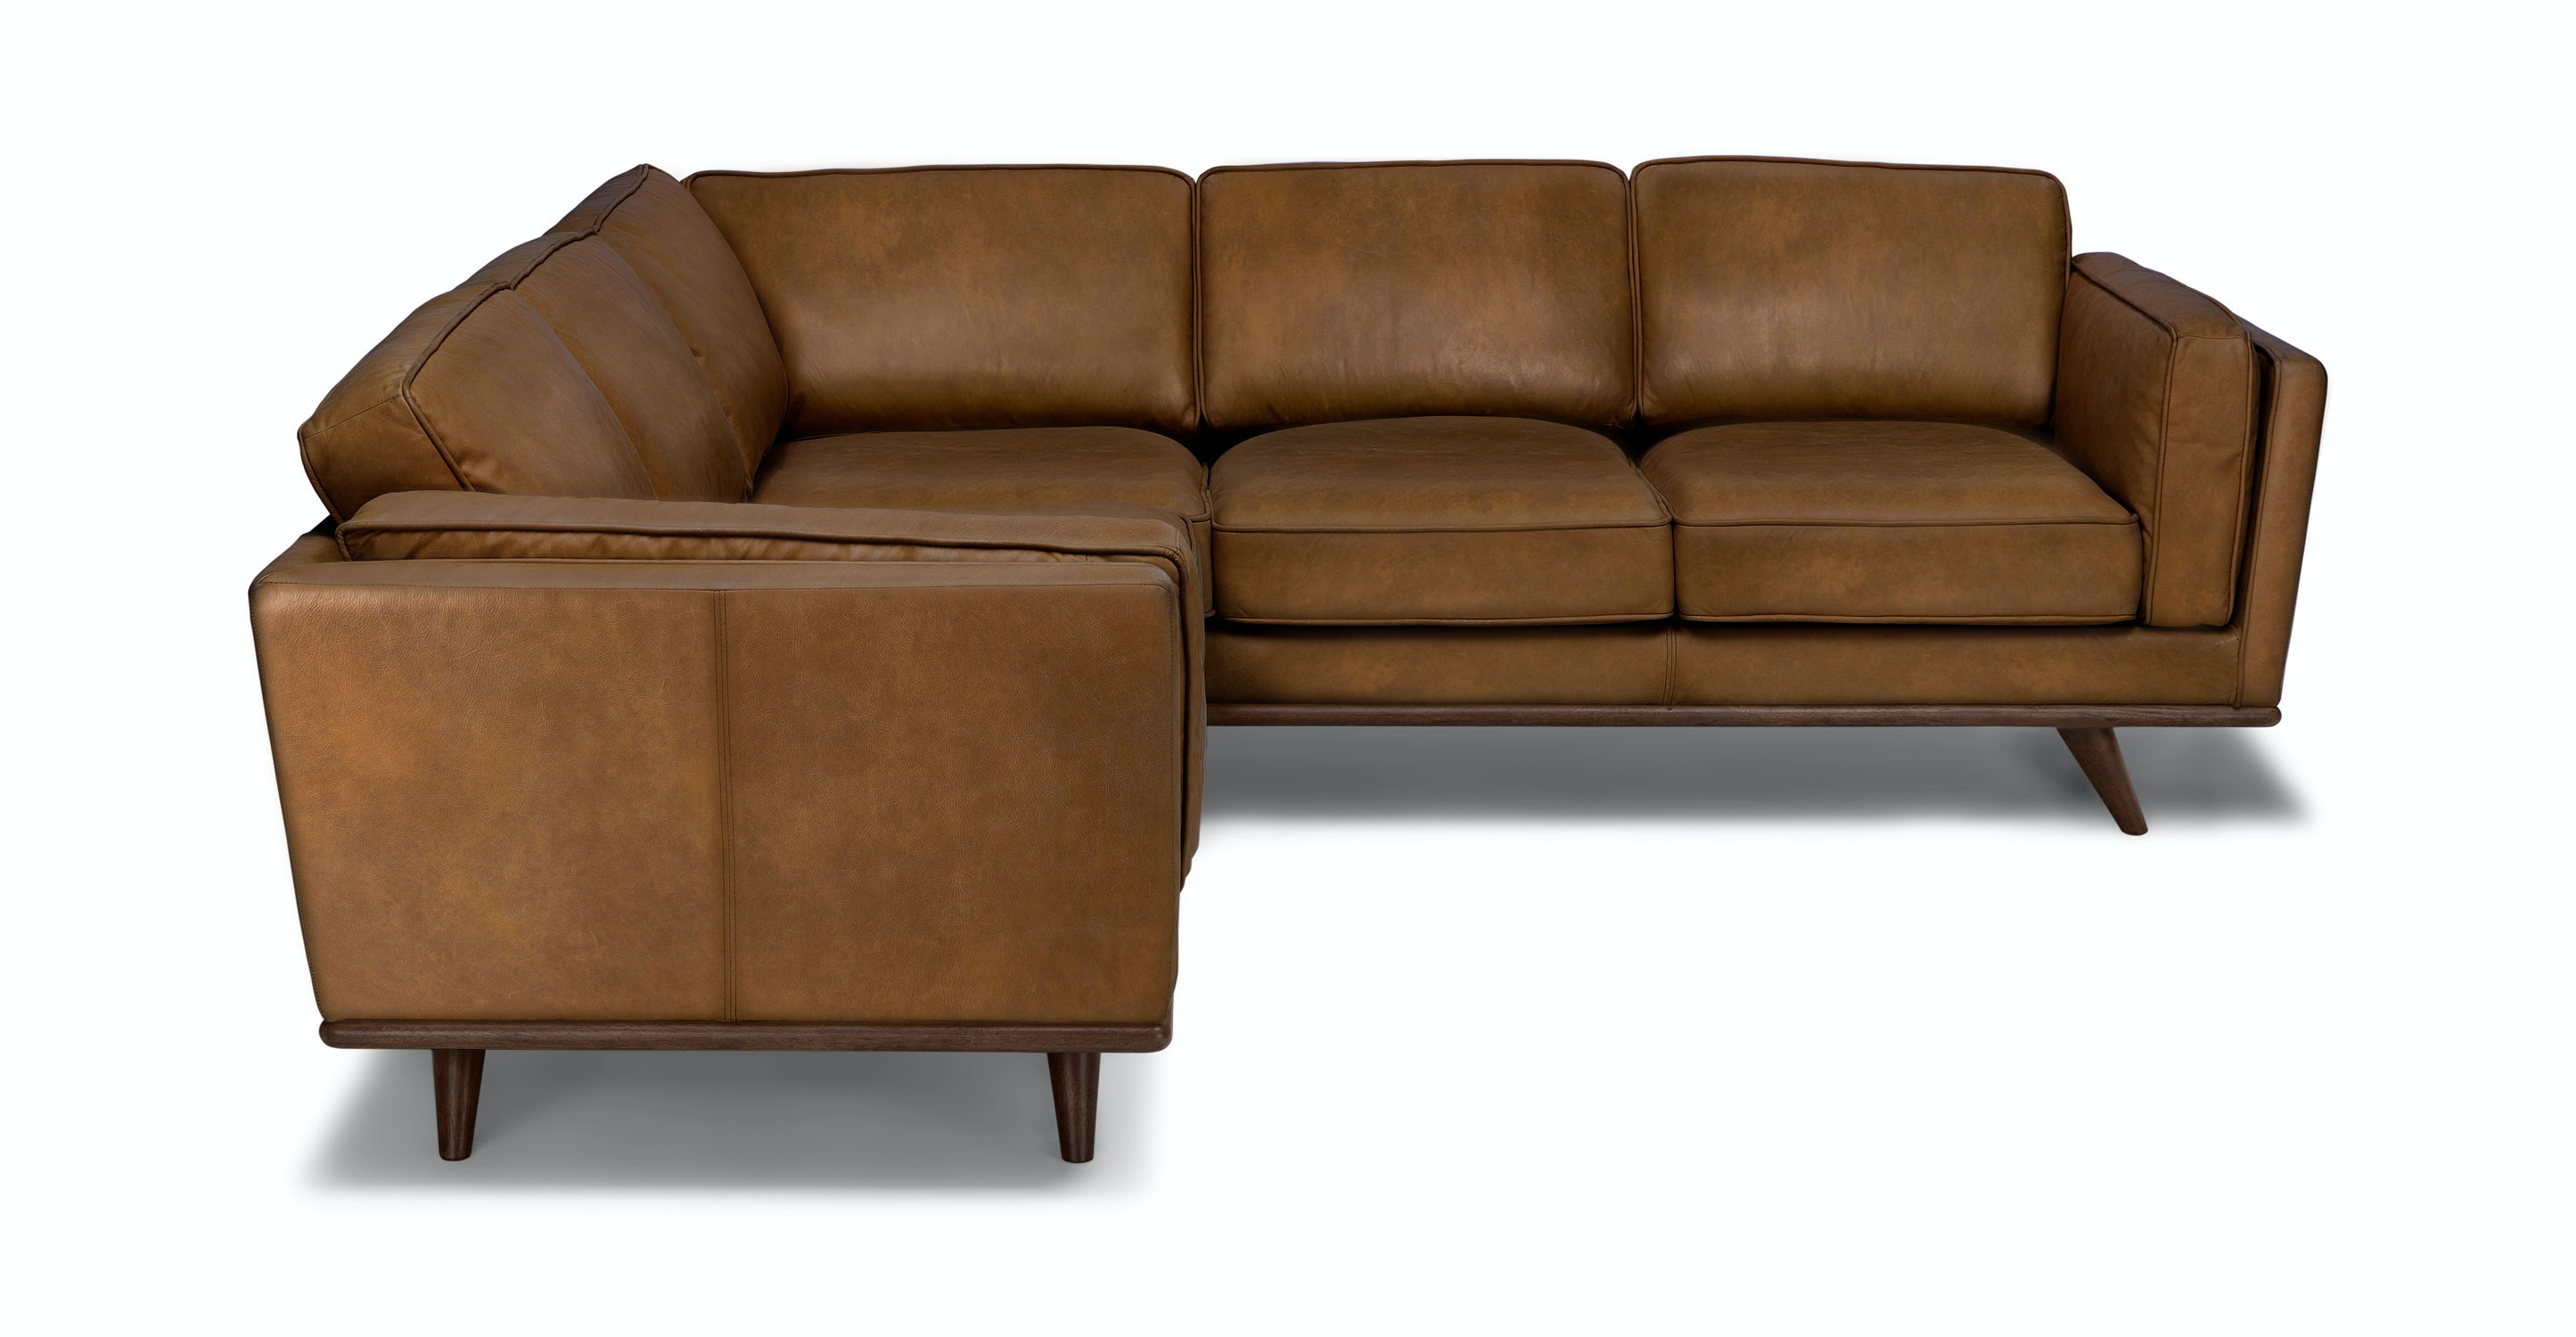 furniture sectional sets leather room couch martino sofas top economax tan view living of throughout couches pieces